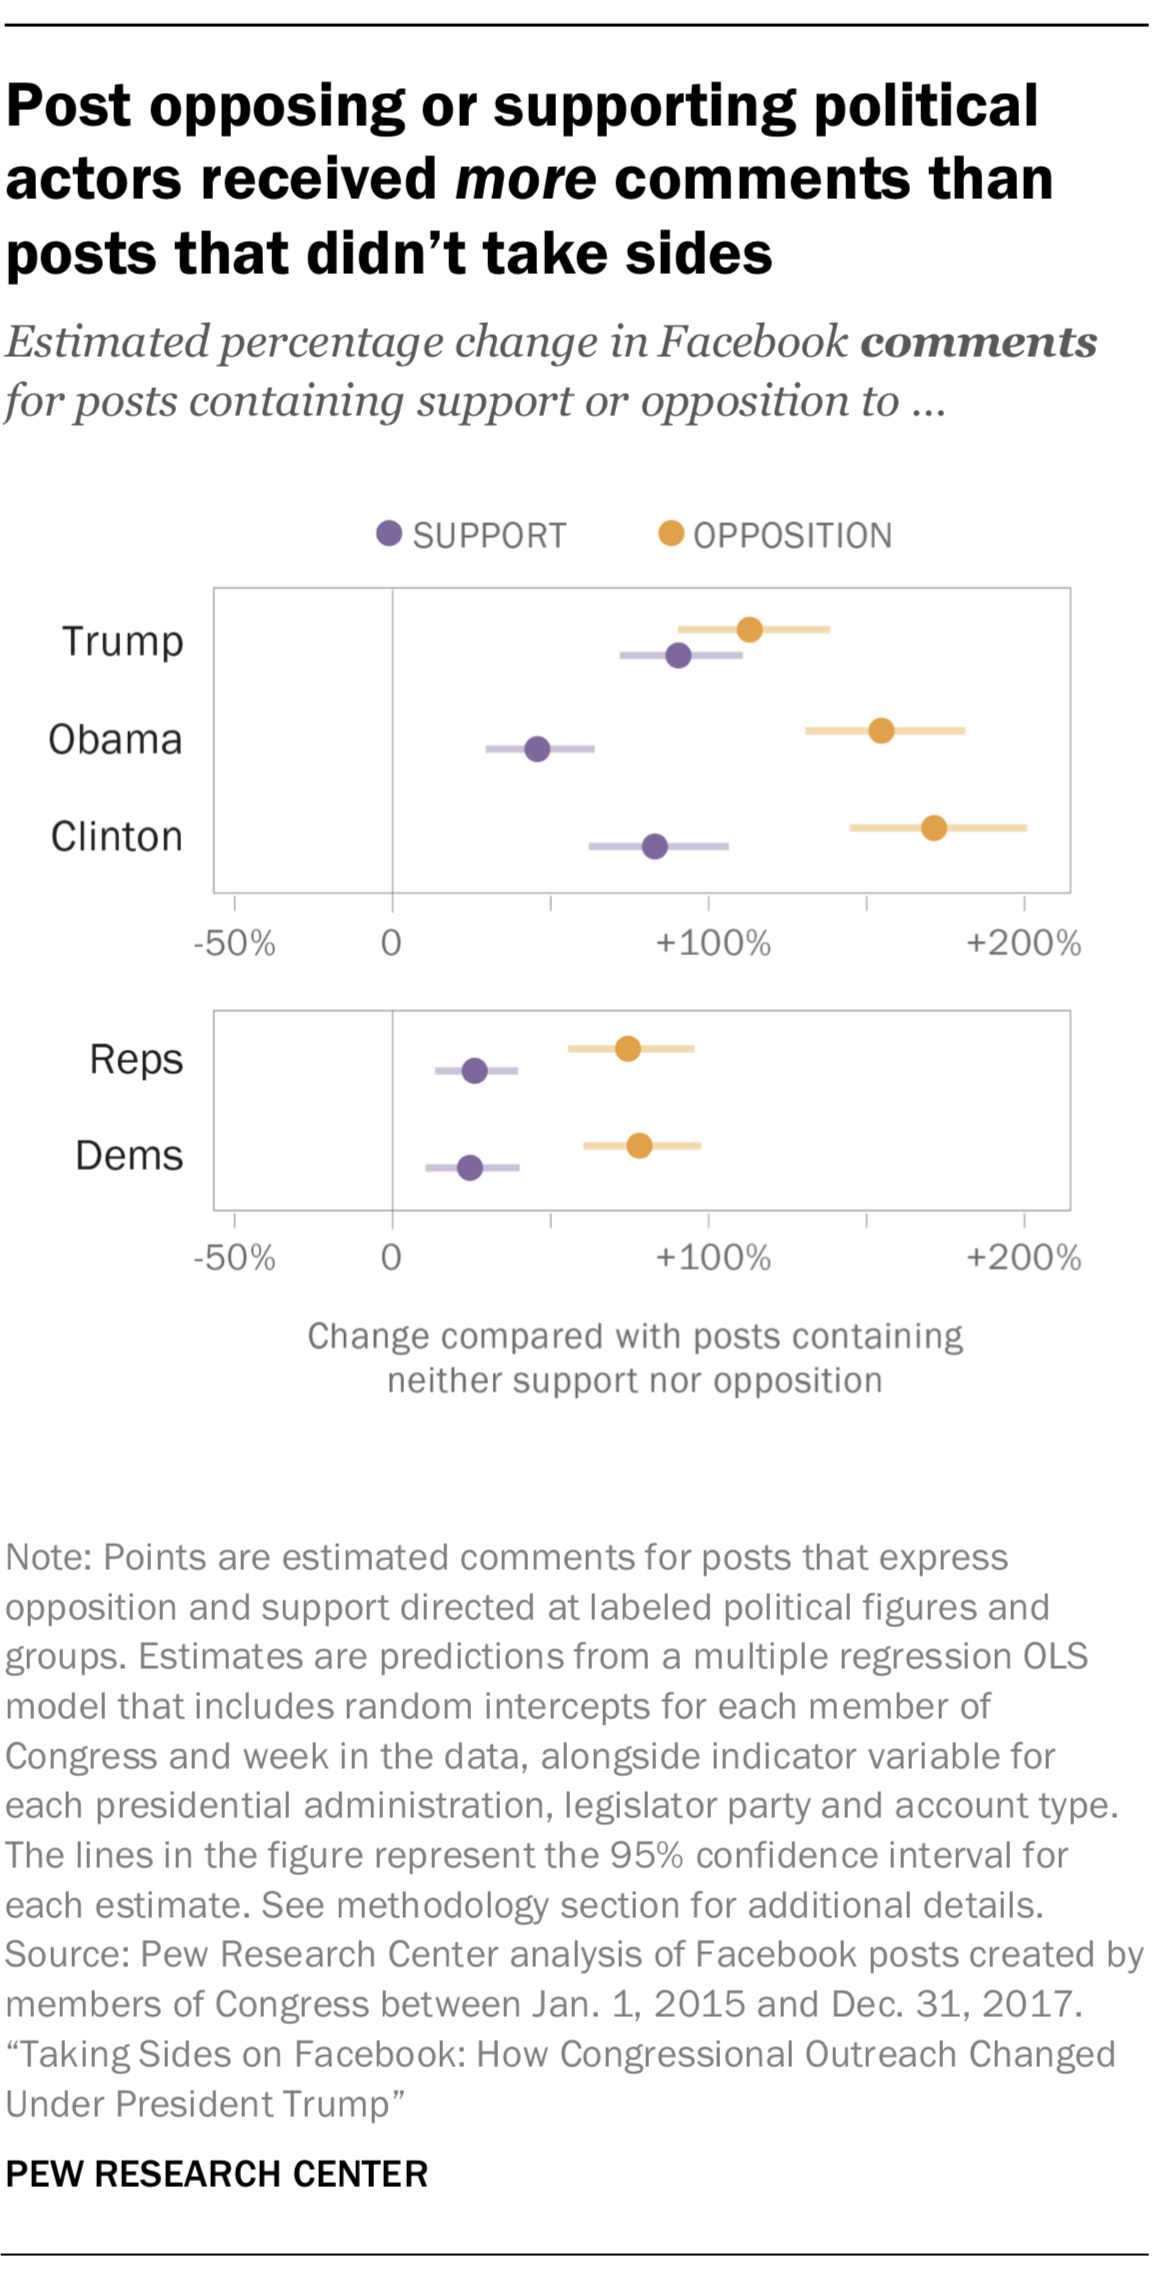 Post opposing or supporting political actors received more comments than posts that didn't take sides